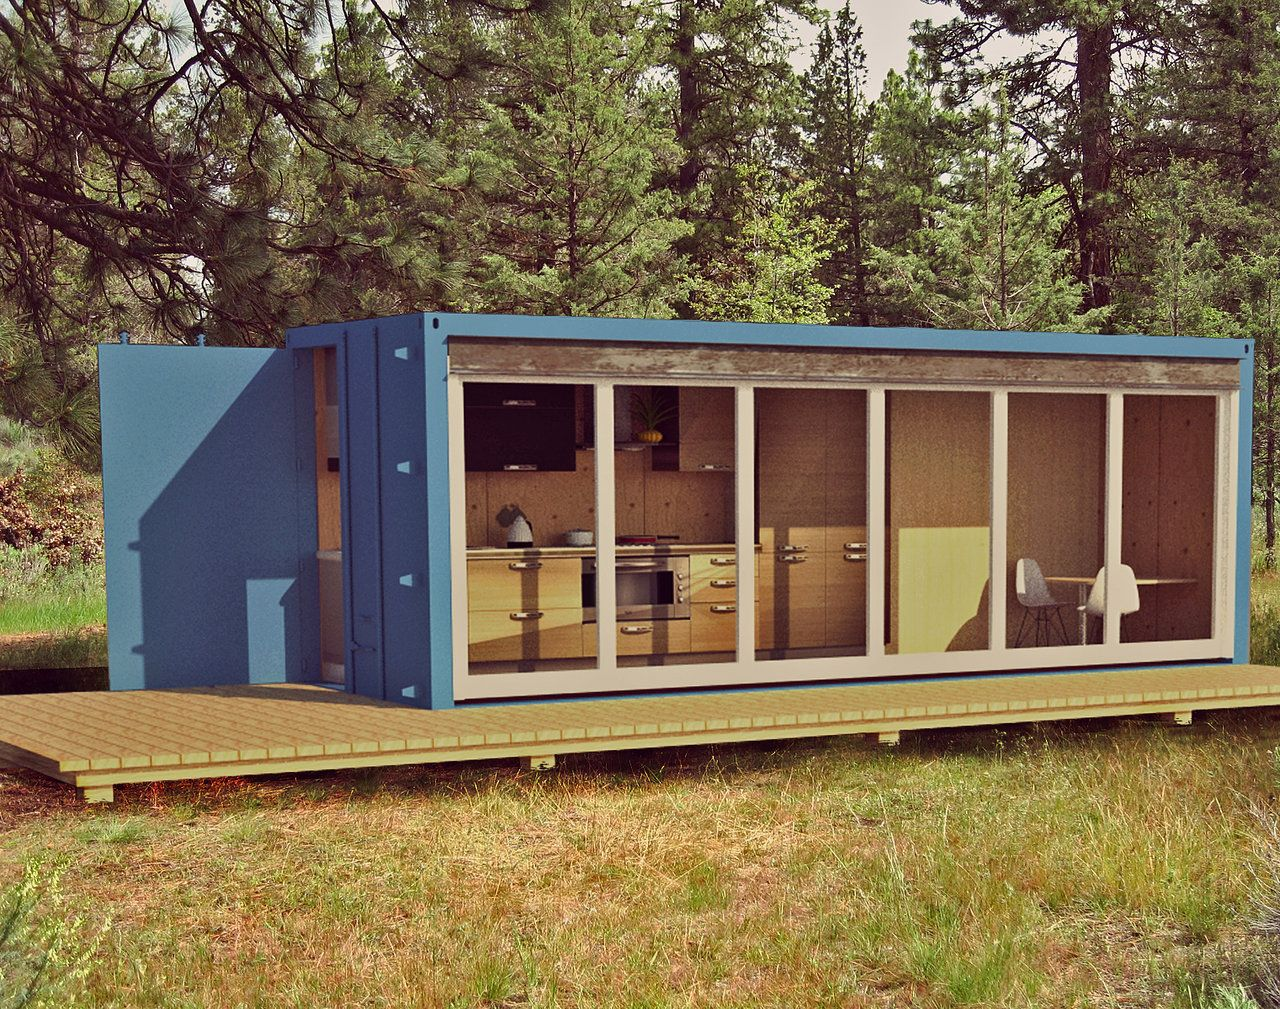 Best Kitchen Gallery: Shipping Container Cabin 1 Alternative Green Homes Pinterest of Inside Shipping Container Homes Kits on rachelxblog.com